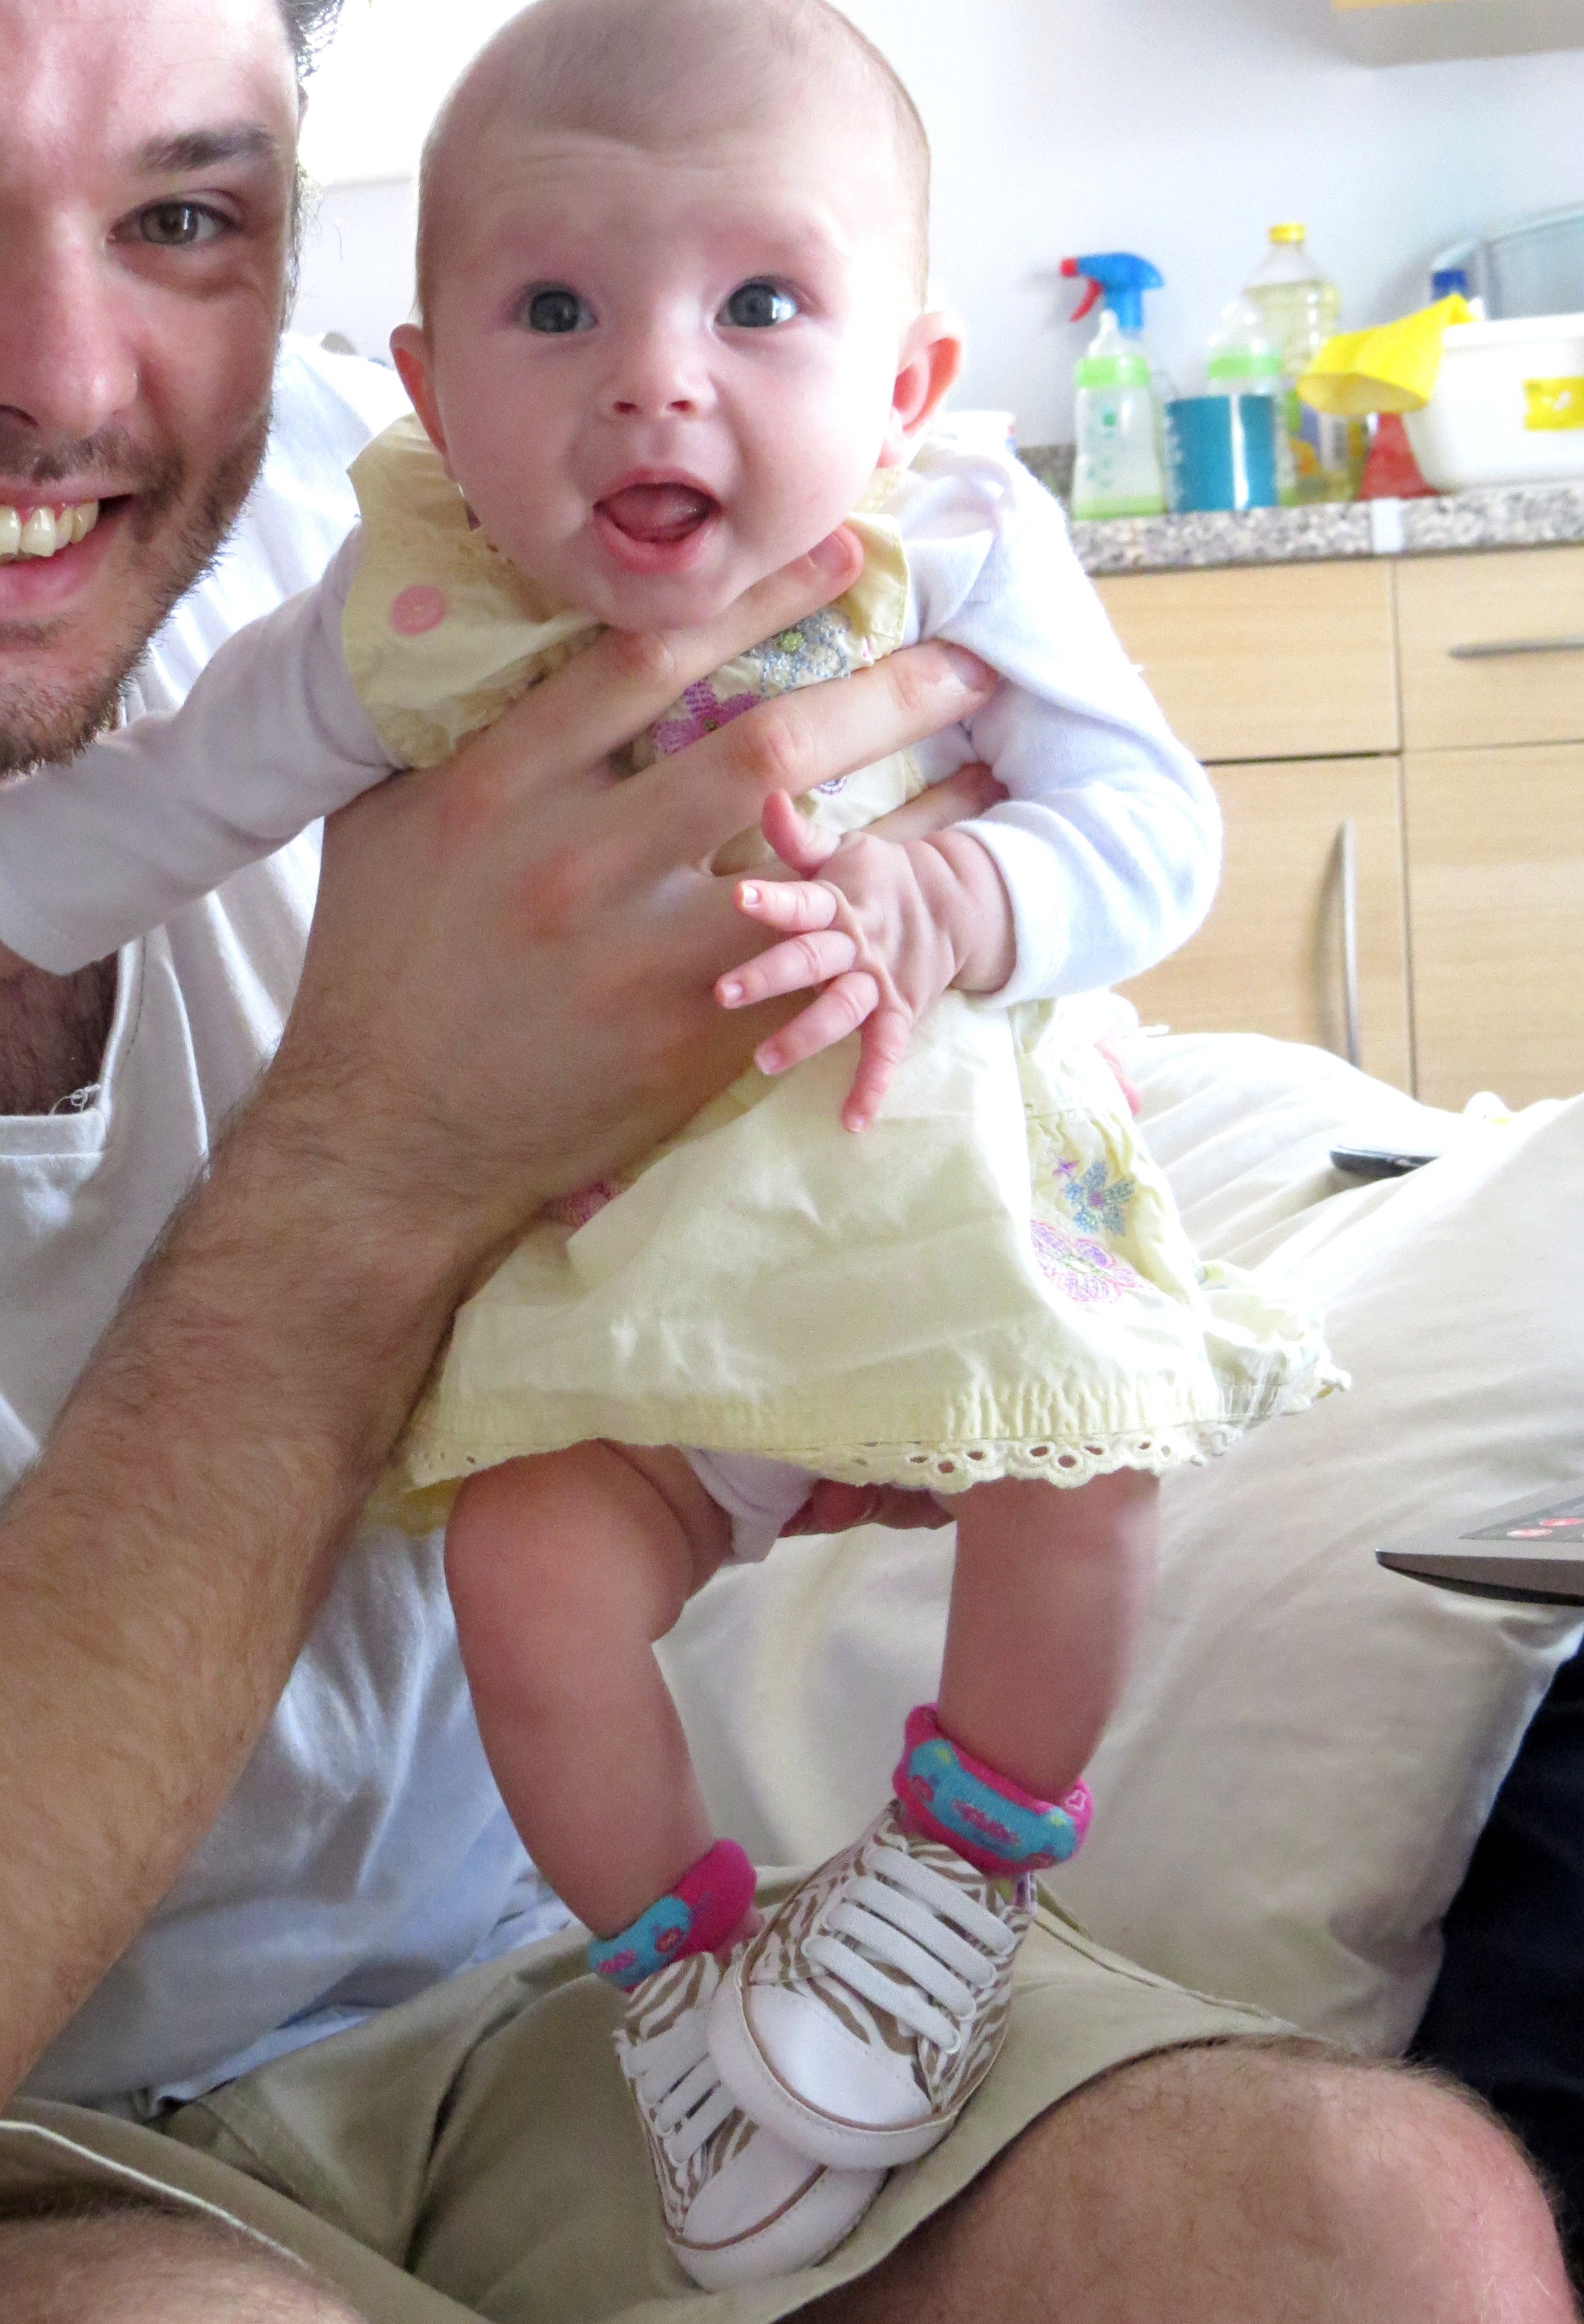 Smiles, shoes and lots of sick: she's 2